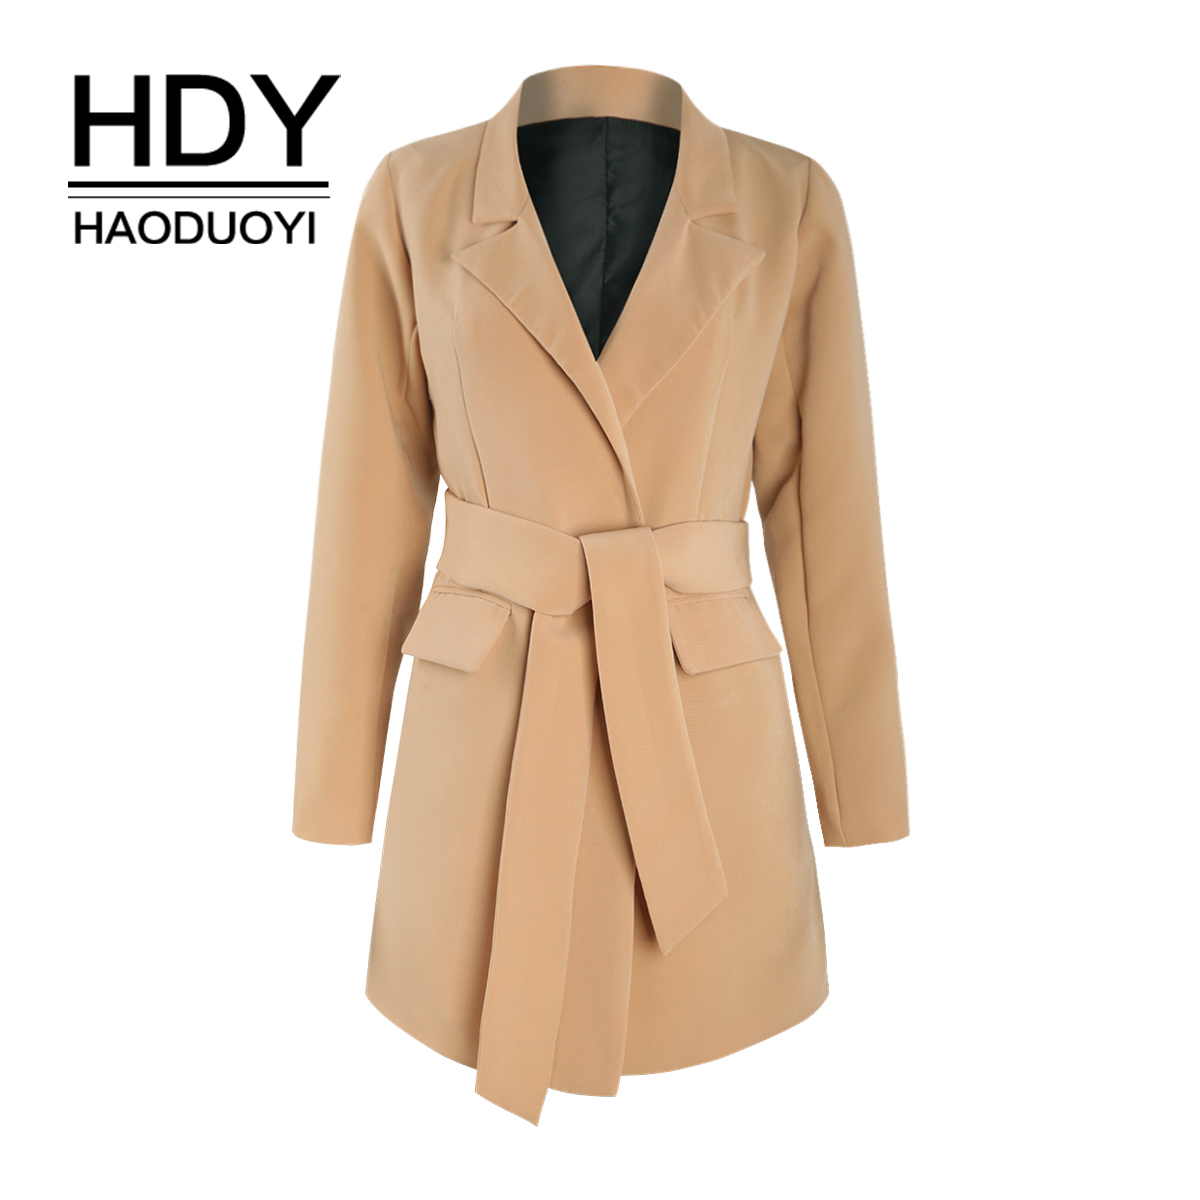 HDY Haoduoyi Simple commuter camel large tie pocket waistband slim suit jacket